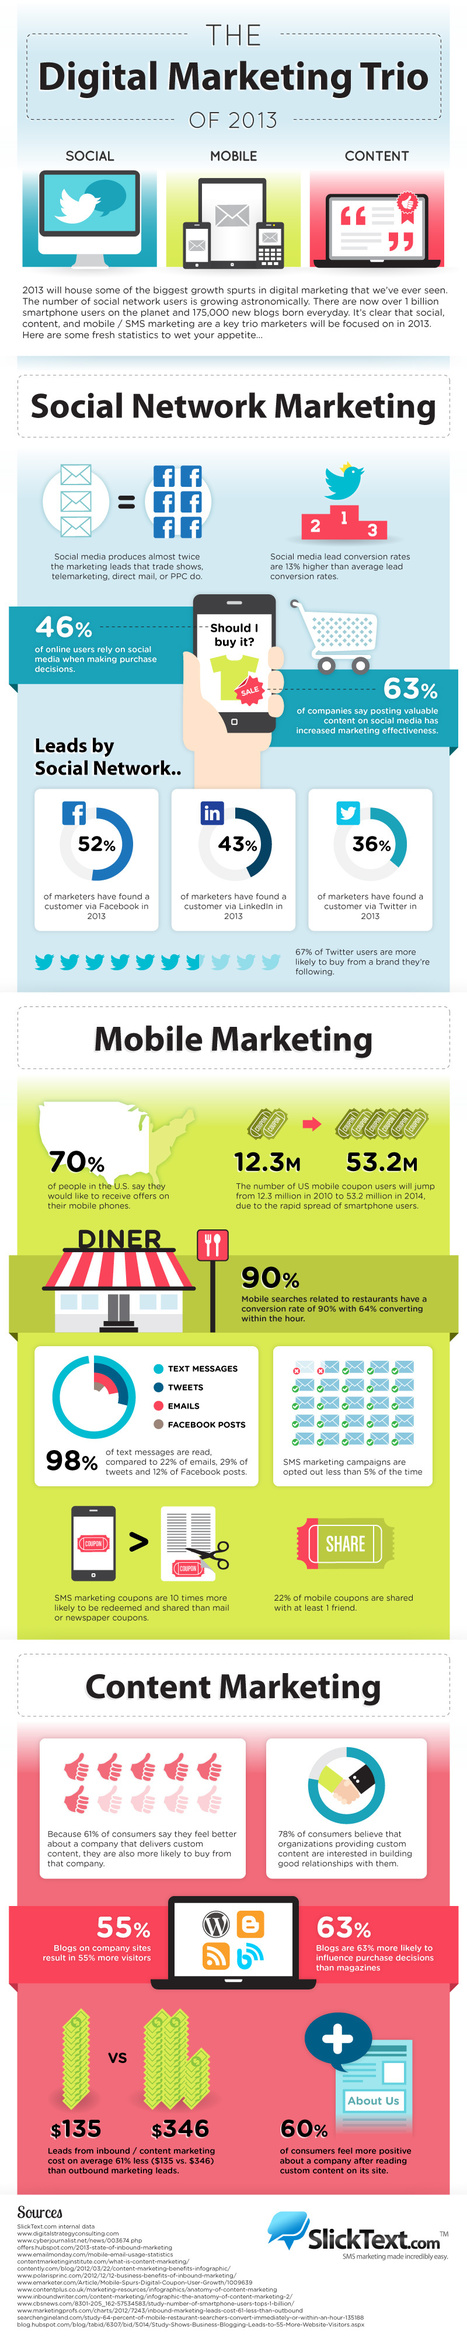 The Digital Marketing Trio Of 2013 [Infographic] | SpisanieTO | Scoop.it